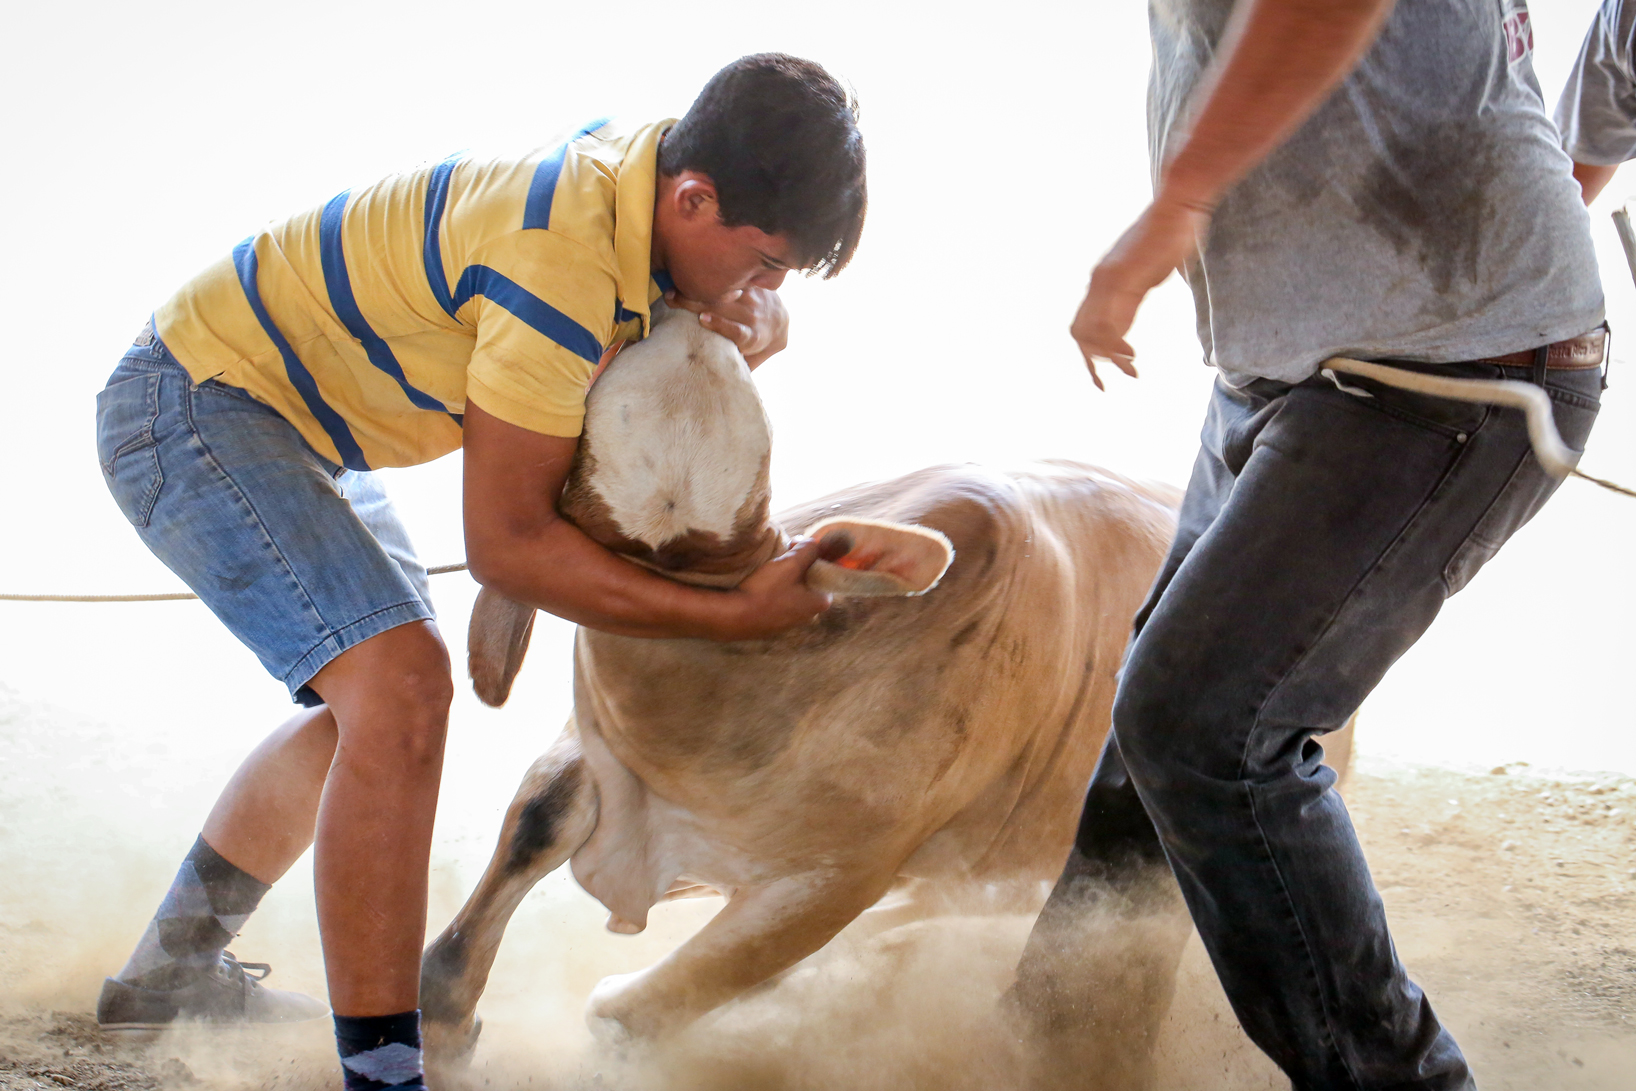 A young Tico twists the head of a bull to compel it to the ground.